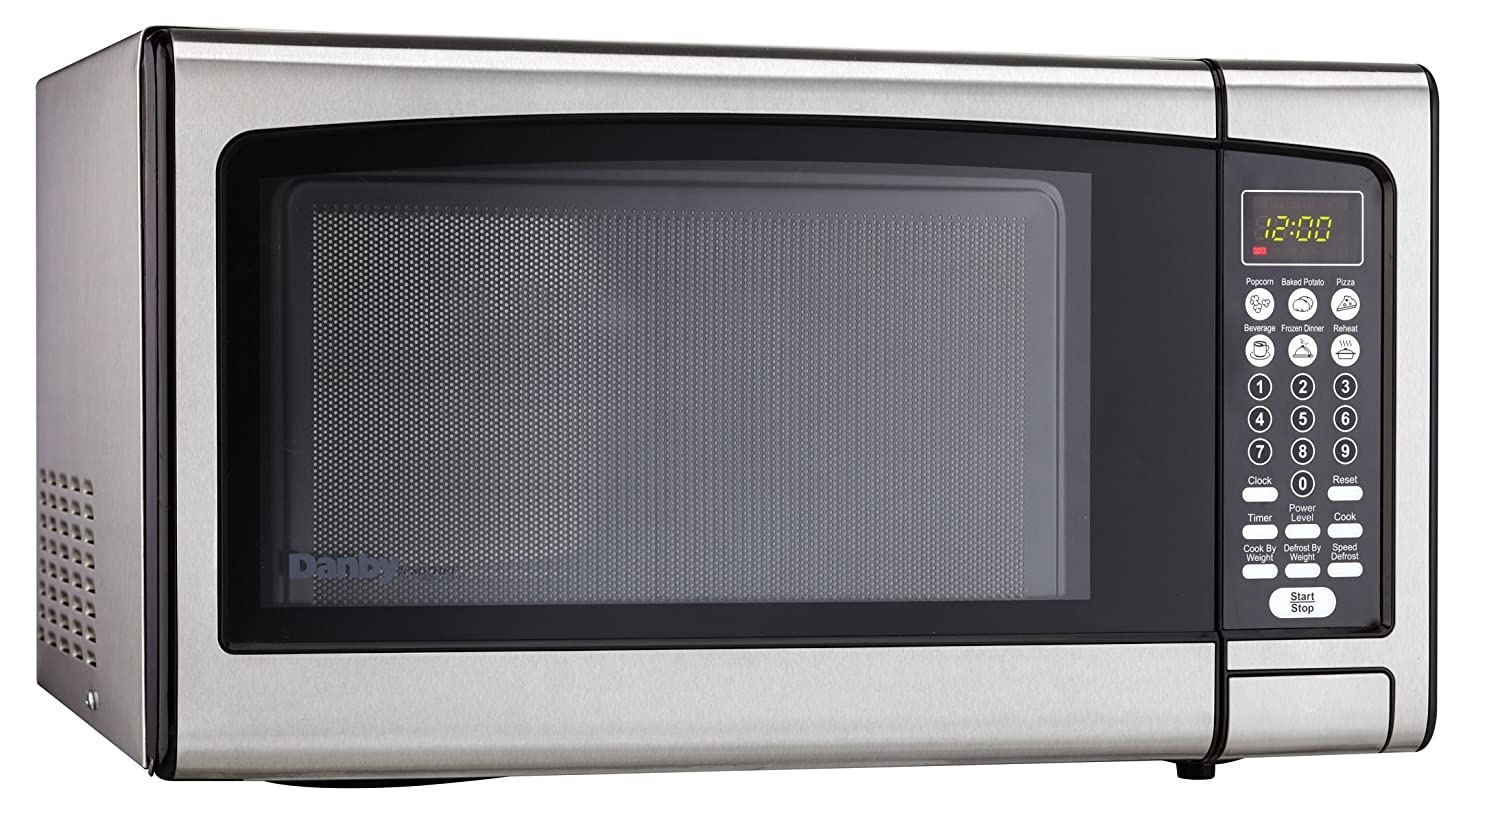 Danby Designer 1 1 Countertop Microwave Stainless Steel New Free Ship